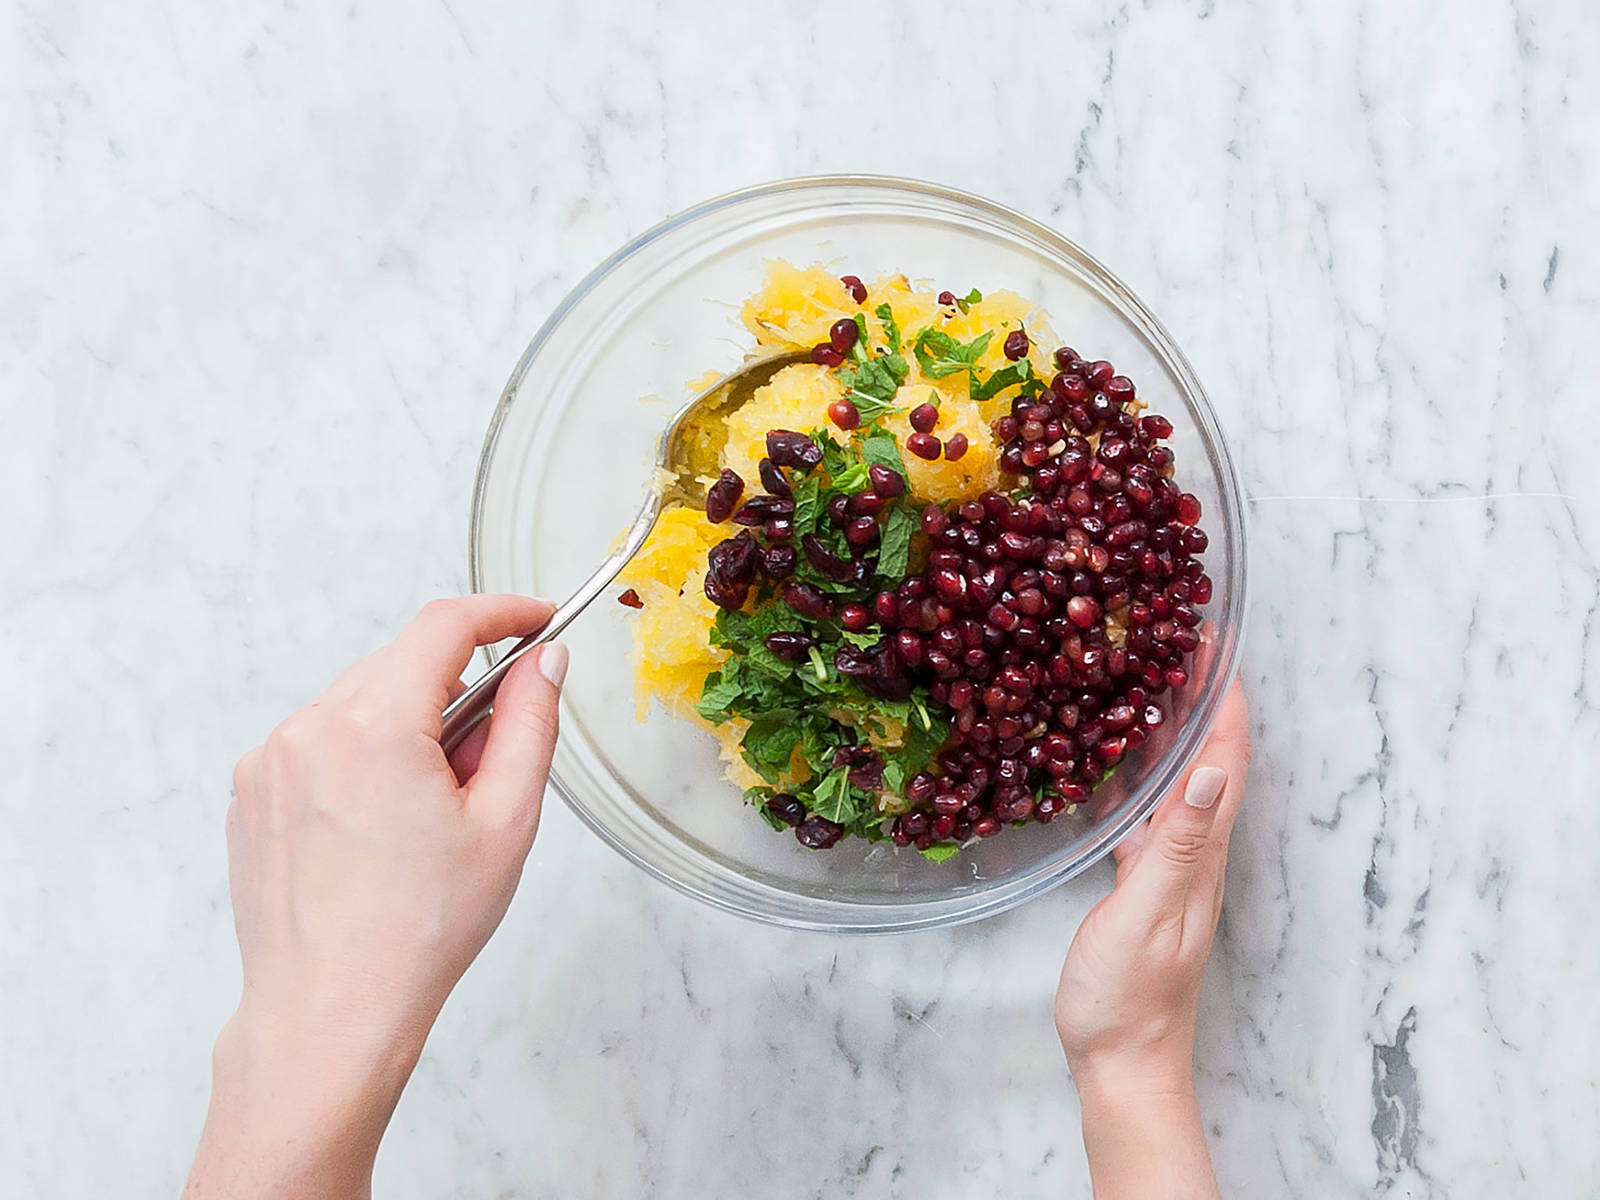 Remove squash from oven, fray out the pulp with a fork, add to a large bowl and let cool down. Once cool, add mint, walnuts, dried cranberries, and pomegranate seeds and mix well.